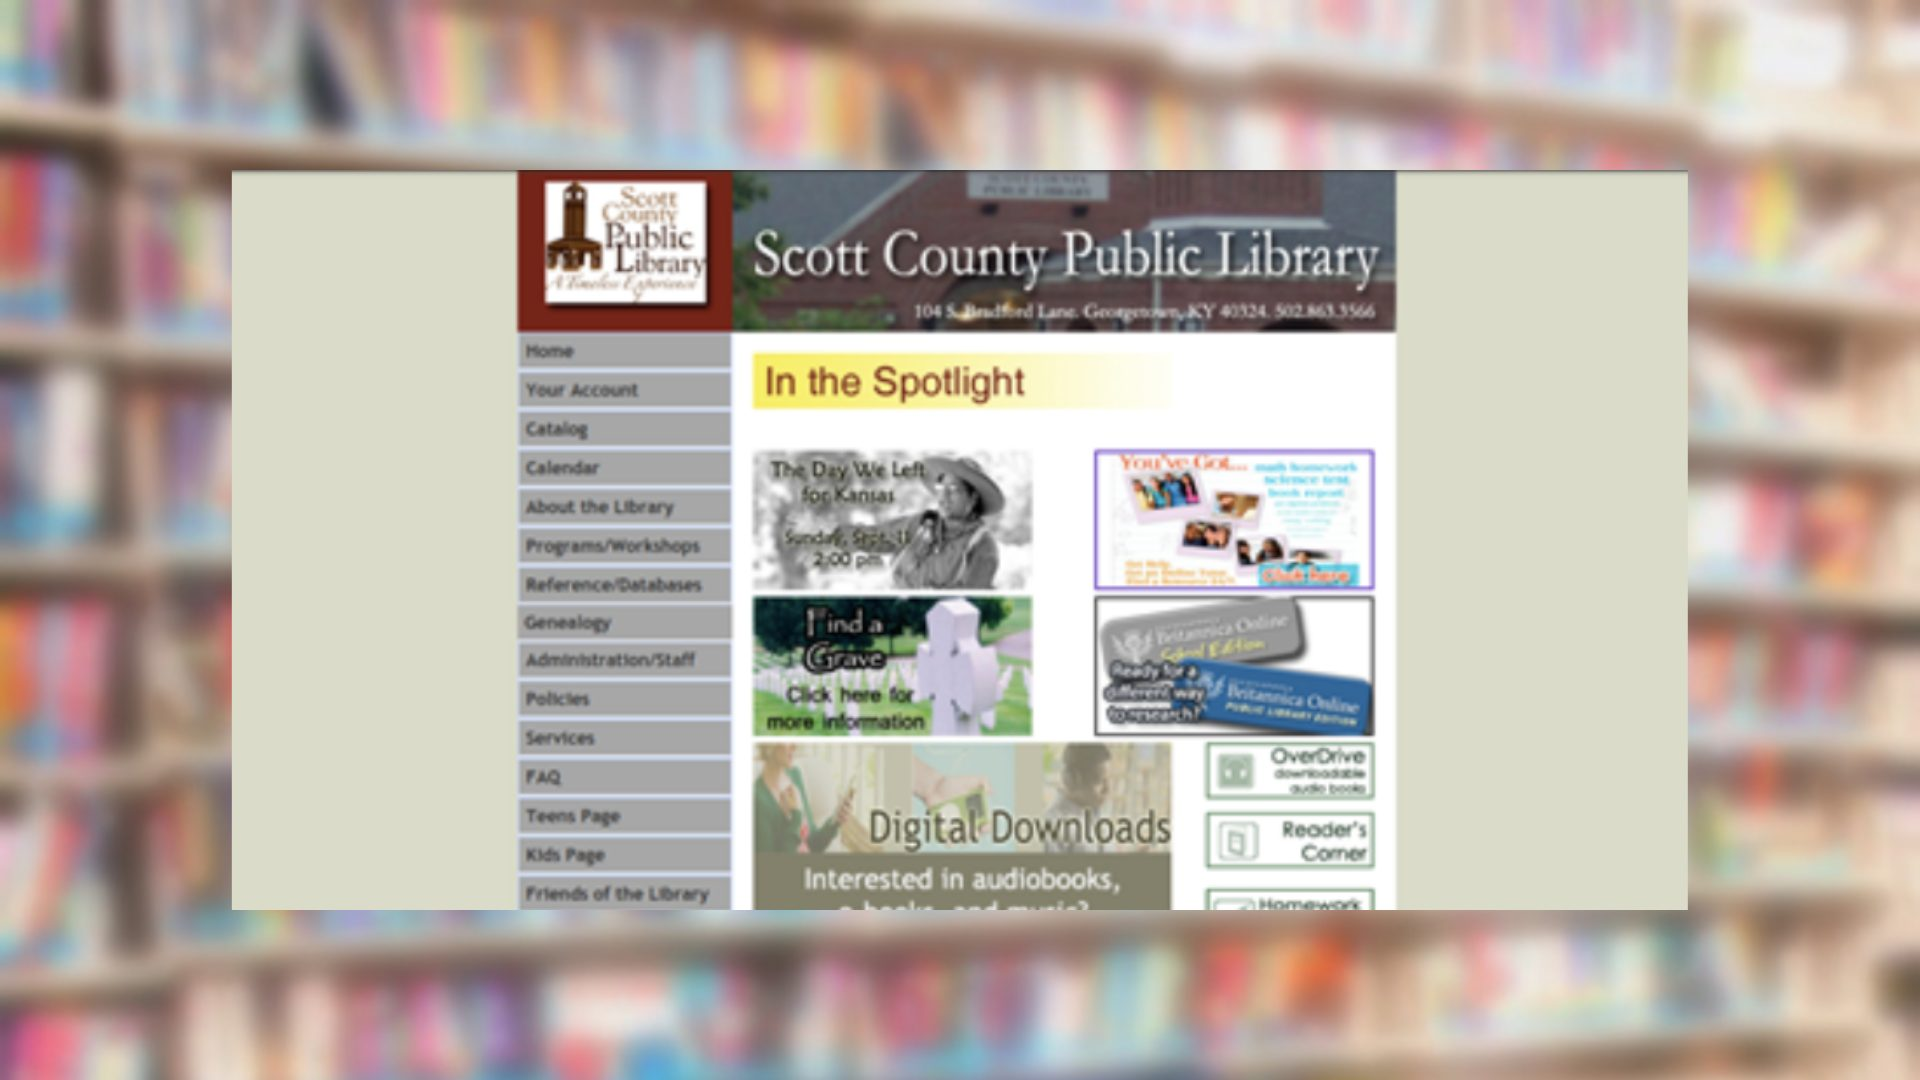 Scott County Public Library Archived Website in 2011